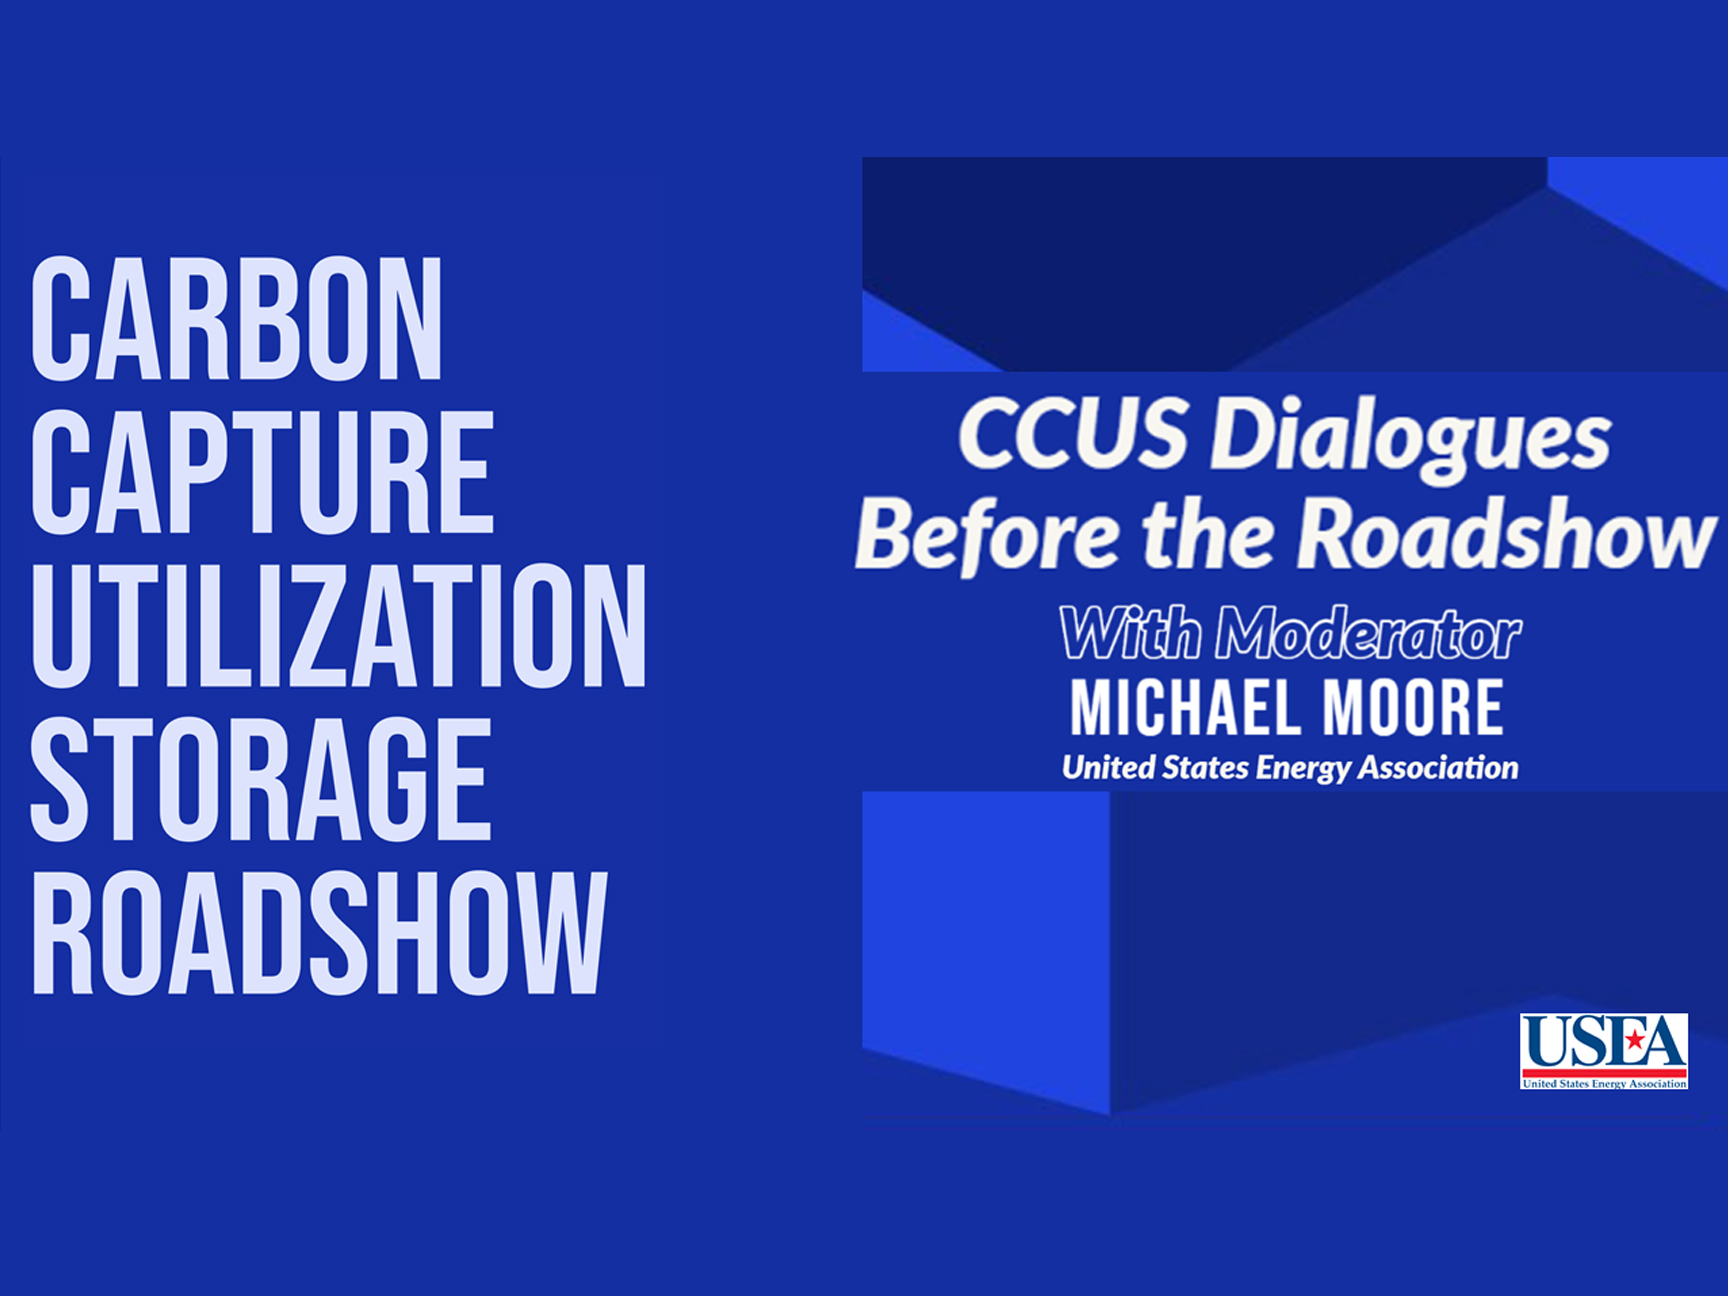 USEA CONSENSUS Webinar: CCUS Dialogues Before the Roadshow Image